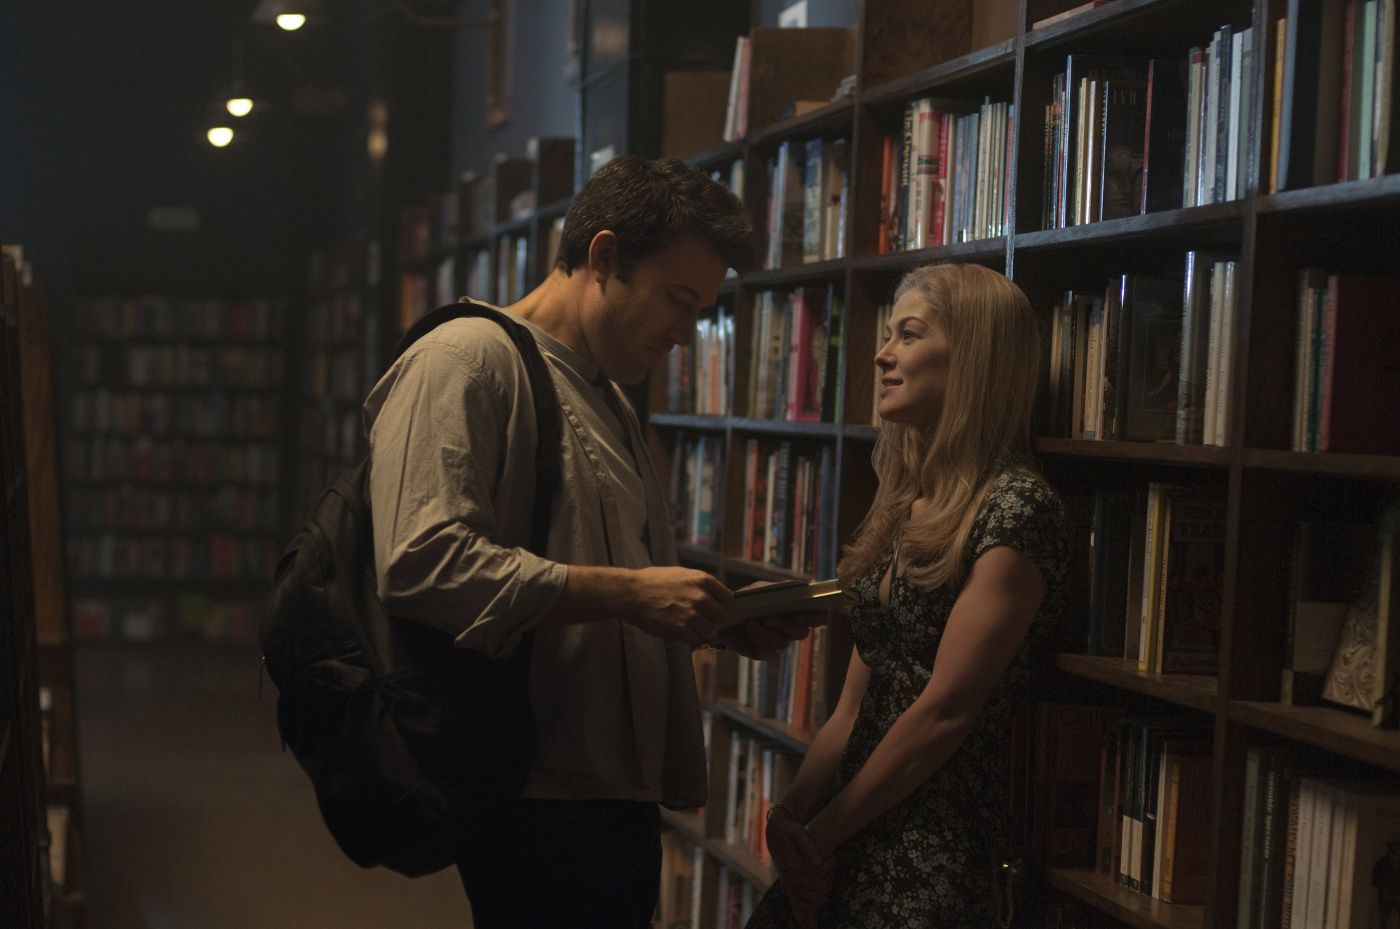 [critique] Le Hulk a vu : Gone Girl